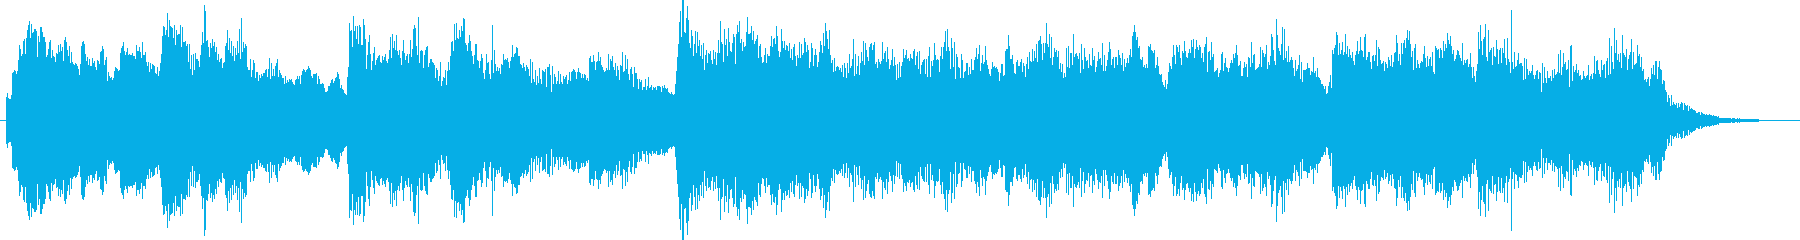 Bright and beautiful ballad jingle's reproduced waveform